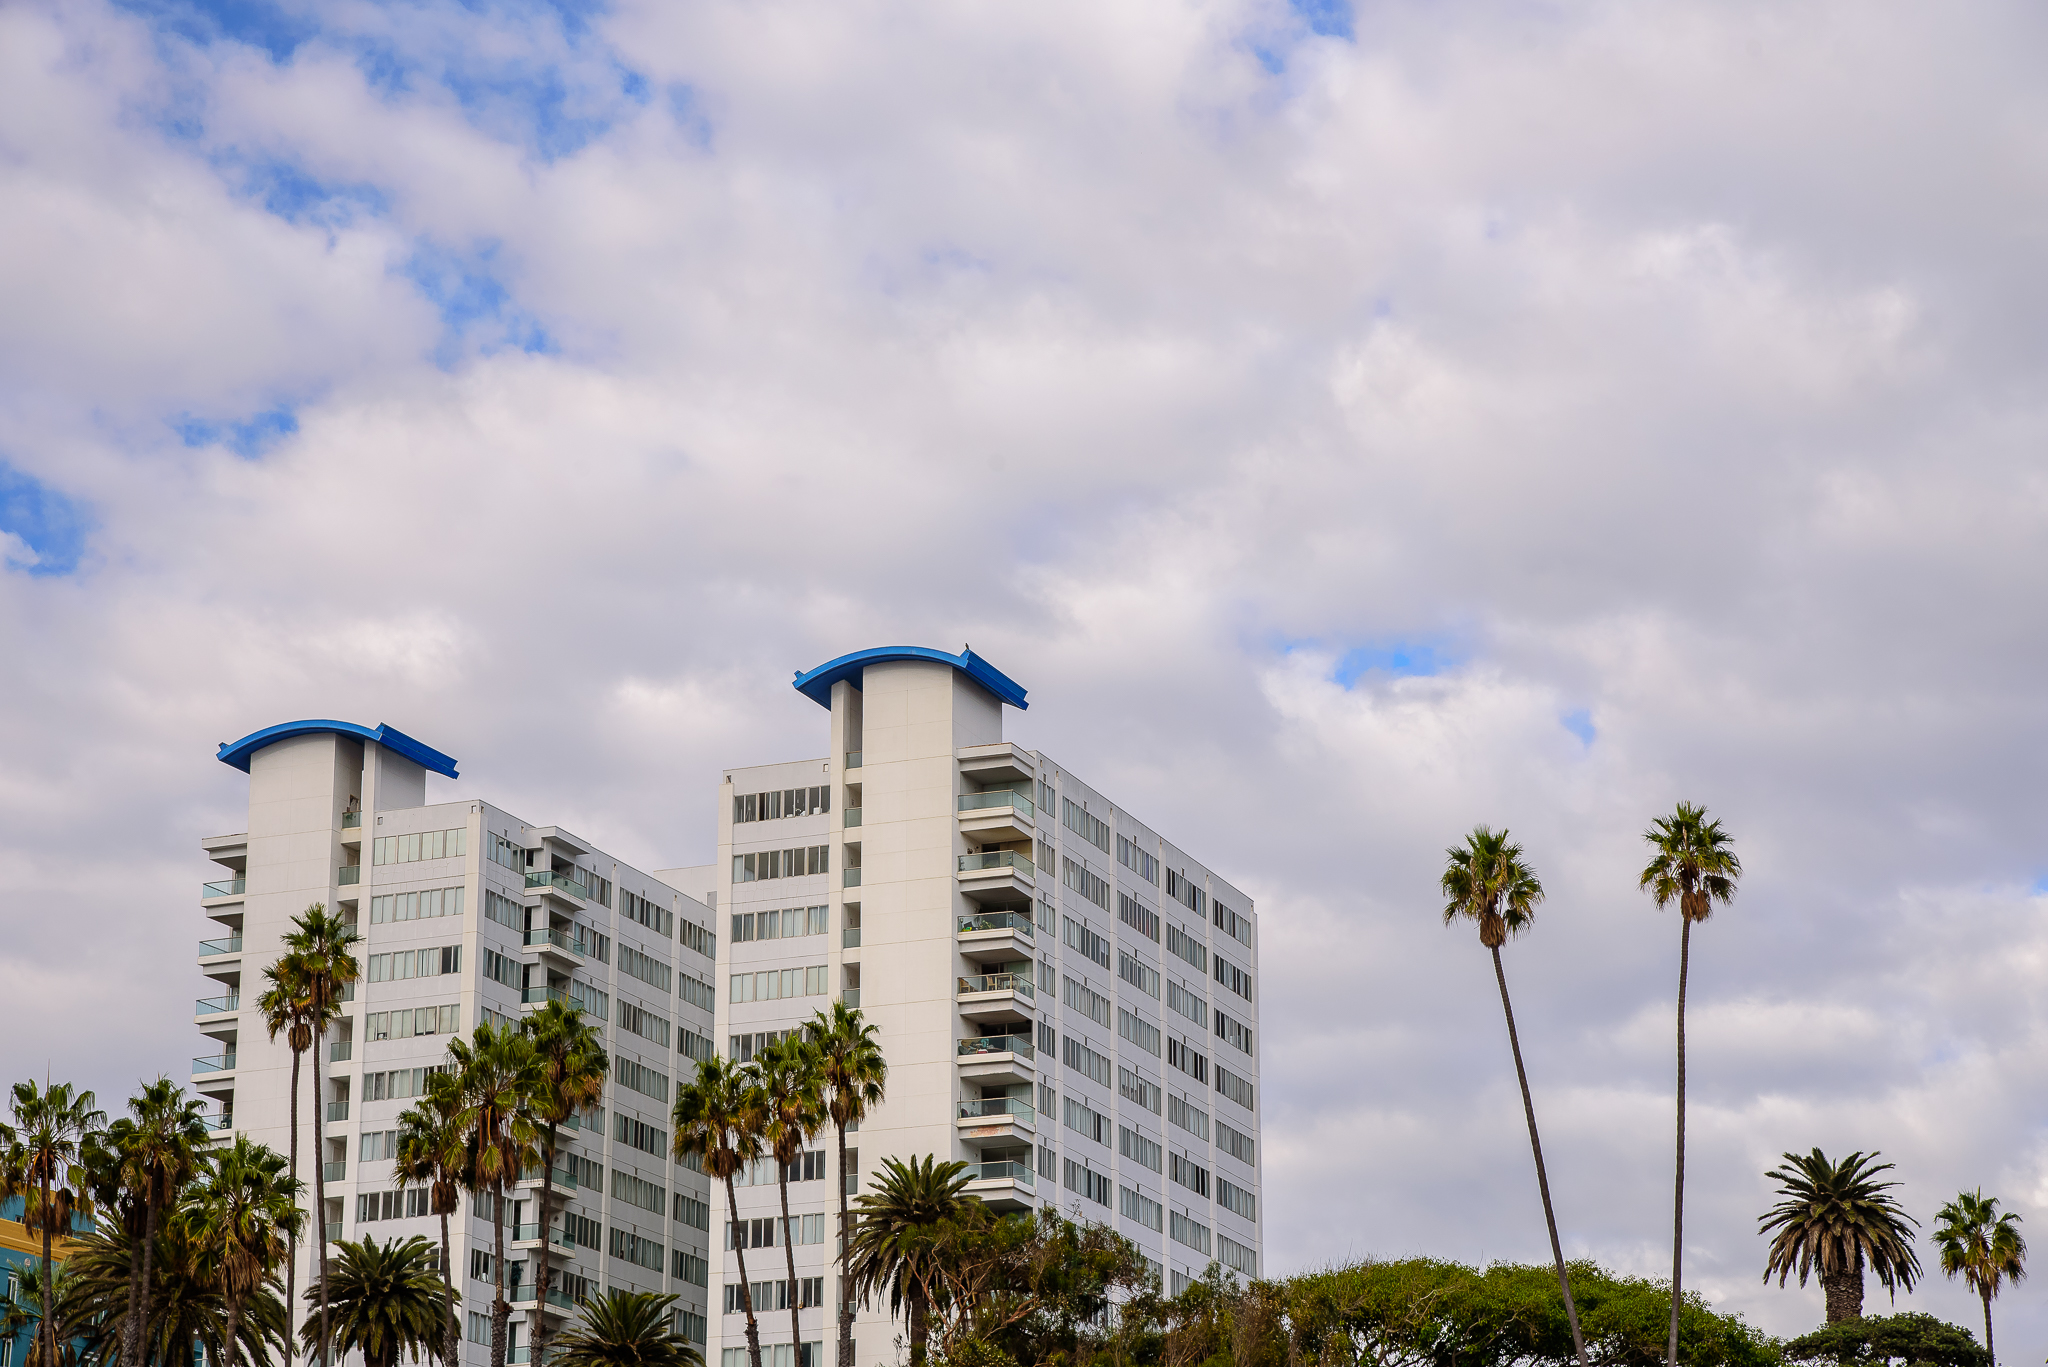 Ocean Ave hotels commanding the coast.  Santa Monica, CA.